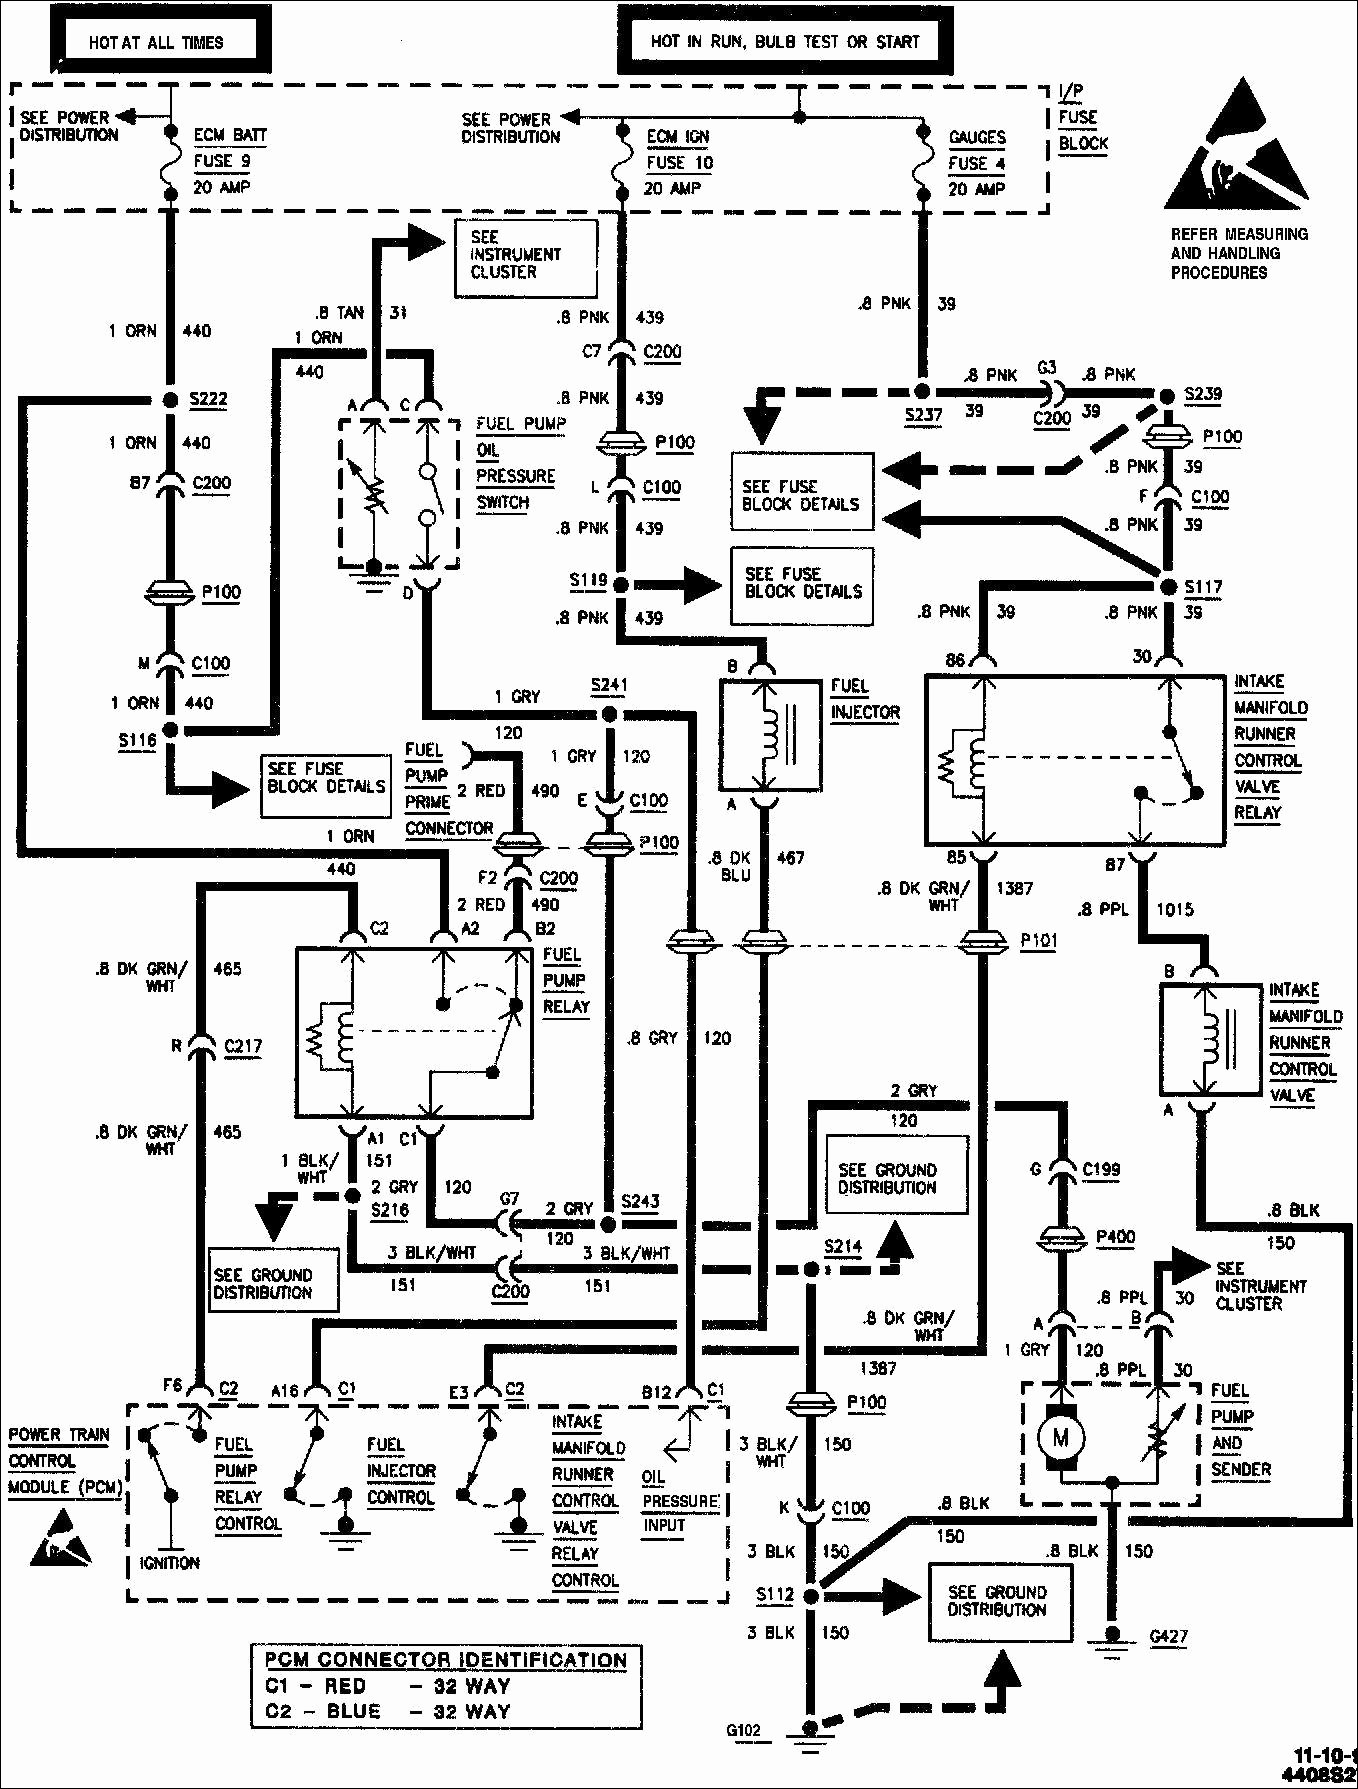 2006 Ford Focus Zx4 Engine Diagram Wiring Diagrams Instructions 1998 Ford  Ranger Horn Wiring Diagram